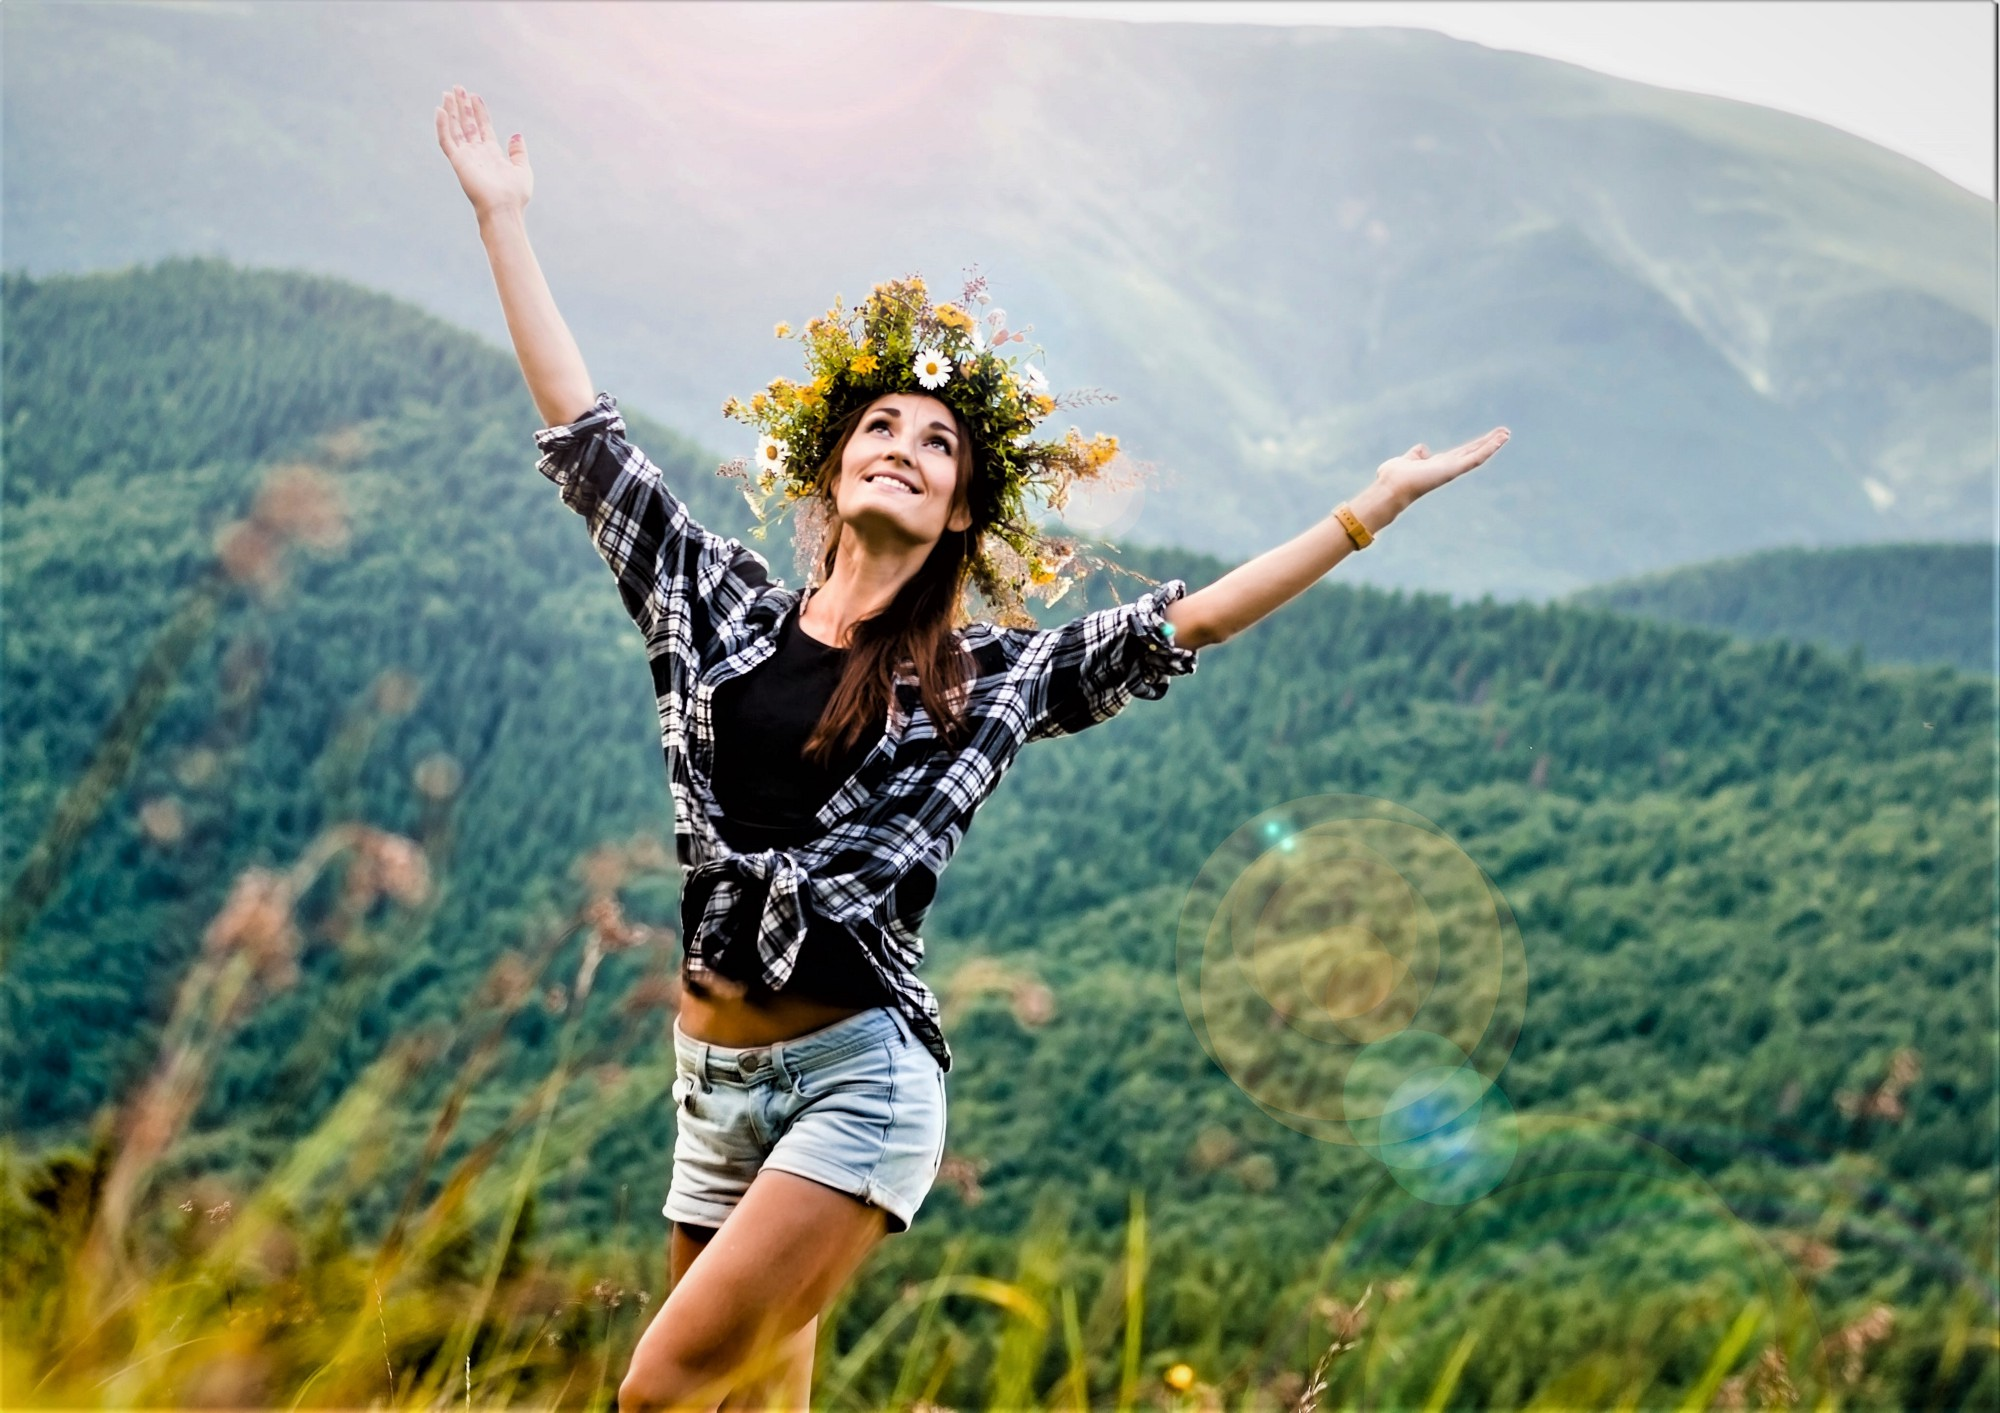 girl with long brown hair wearing wreath of flower on her head waling through grassy field with hands upraised